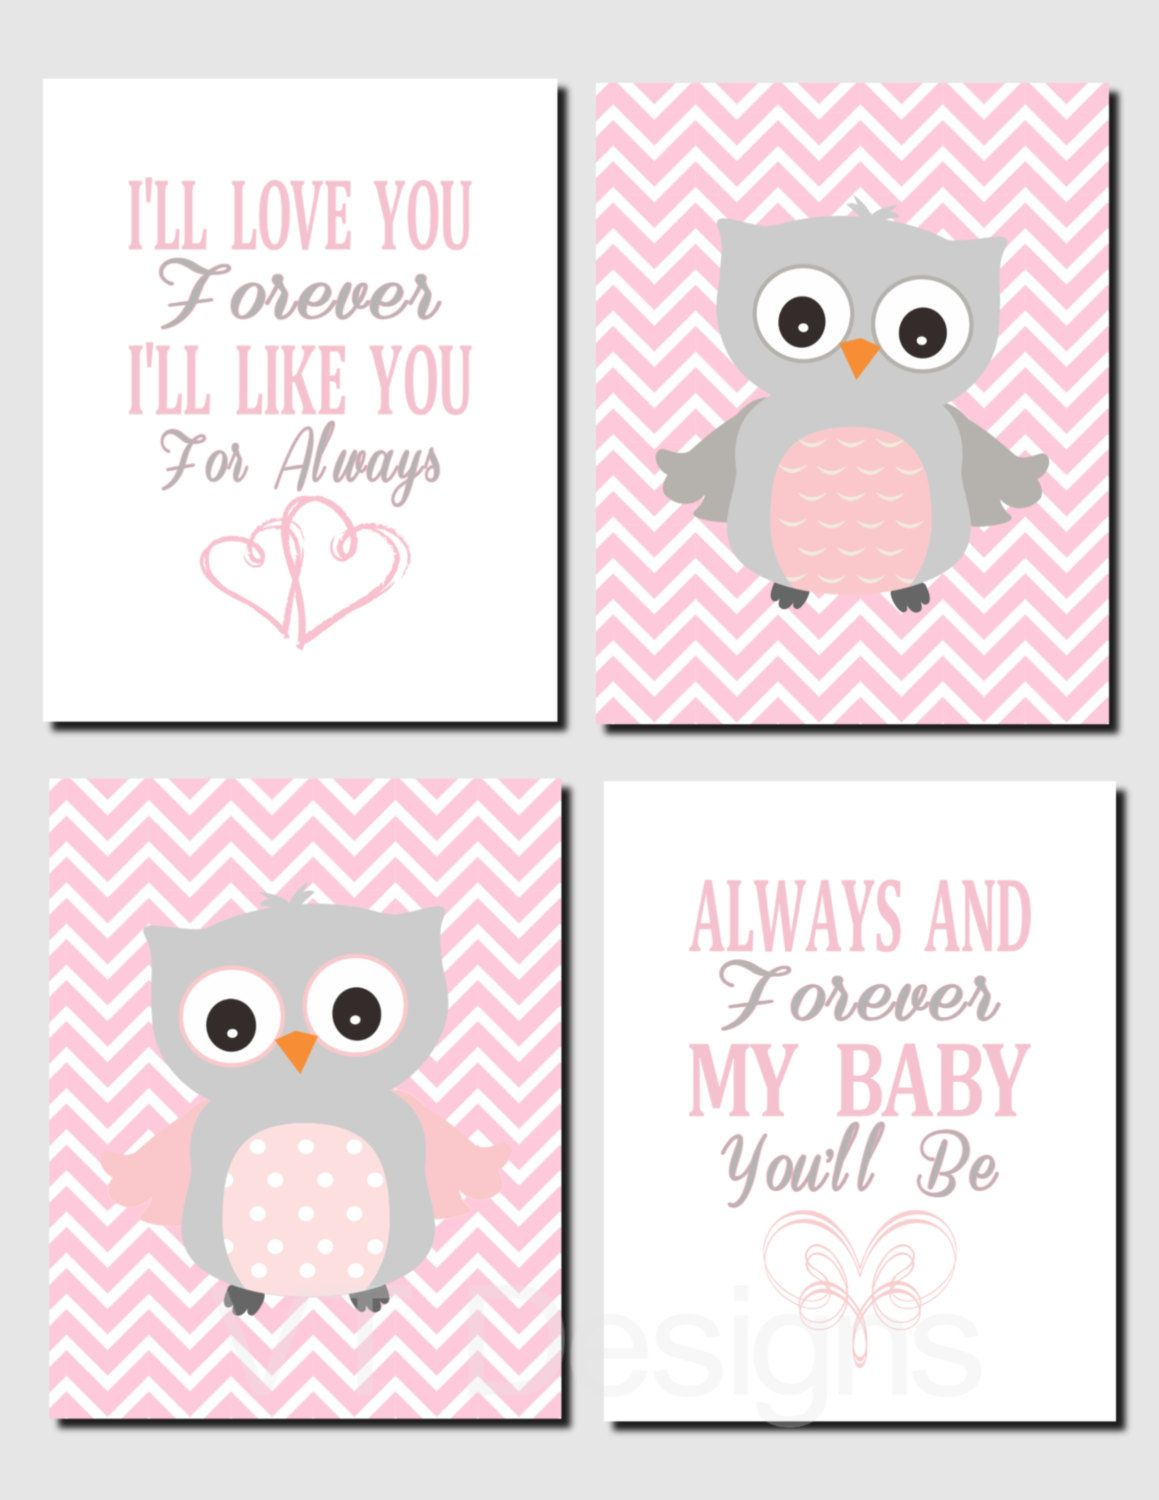 Owl baby shower decorations blue bathroom design amp decor owl - Pink And Gray Nursery Art Owl Wall Art Baby Girl Nursery Decor I Ll Love You Forever Baby Girl Baby Room Set Of 4 Prints Or Canvas